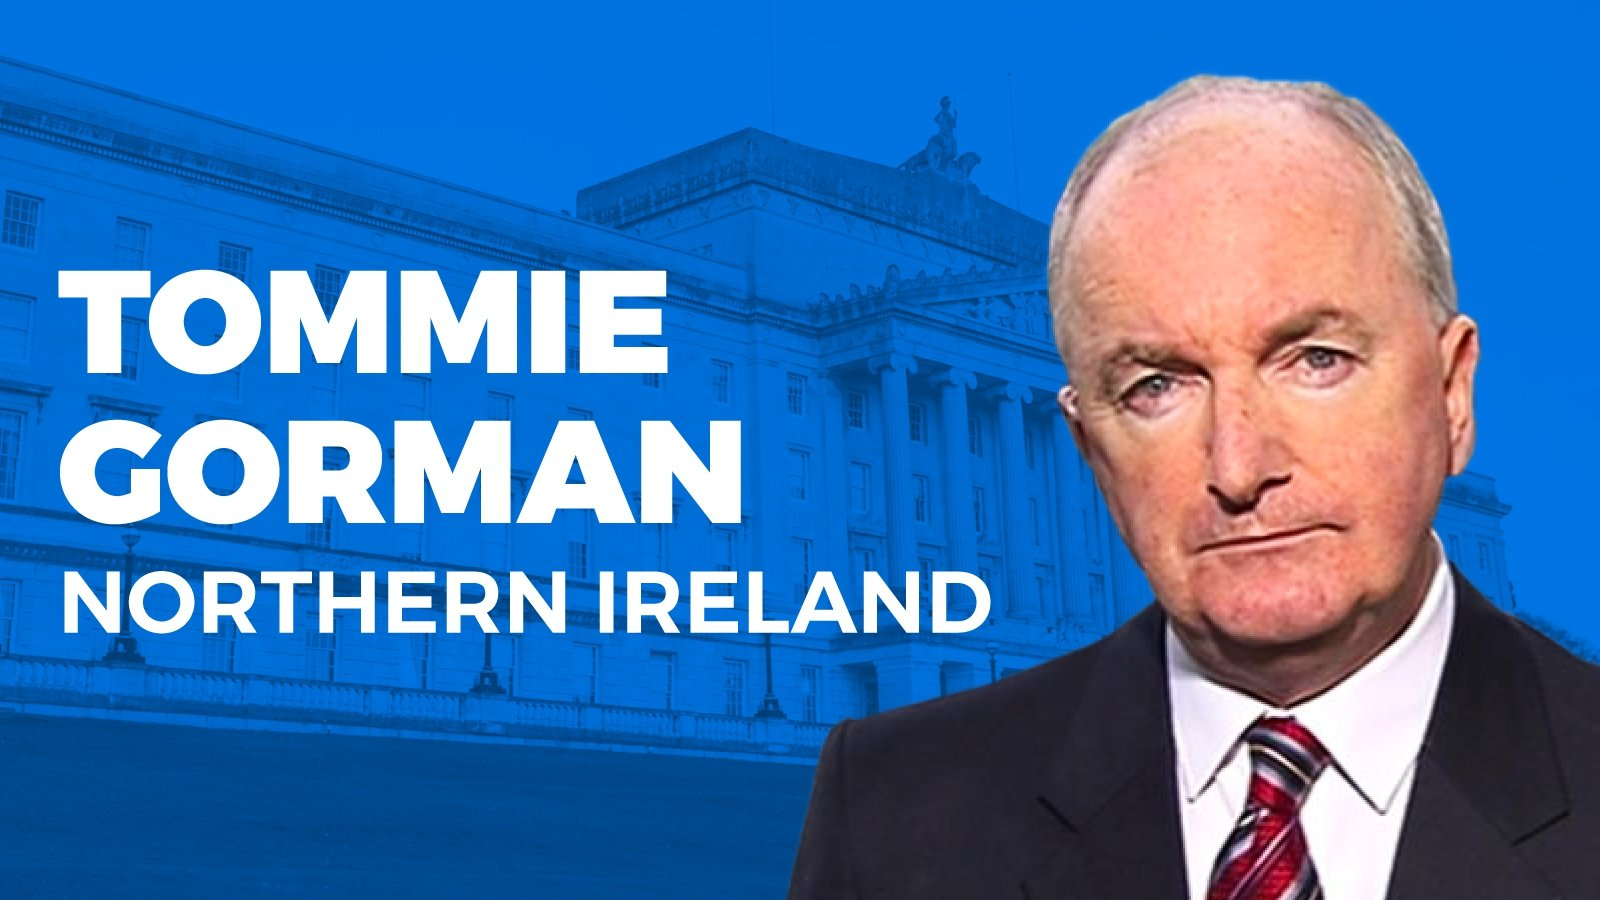 Northern Editor Tommie Gorman looks ahead to the resumption of power-sharing talks and asks if this is the big chance to reopen Stormont?